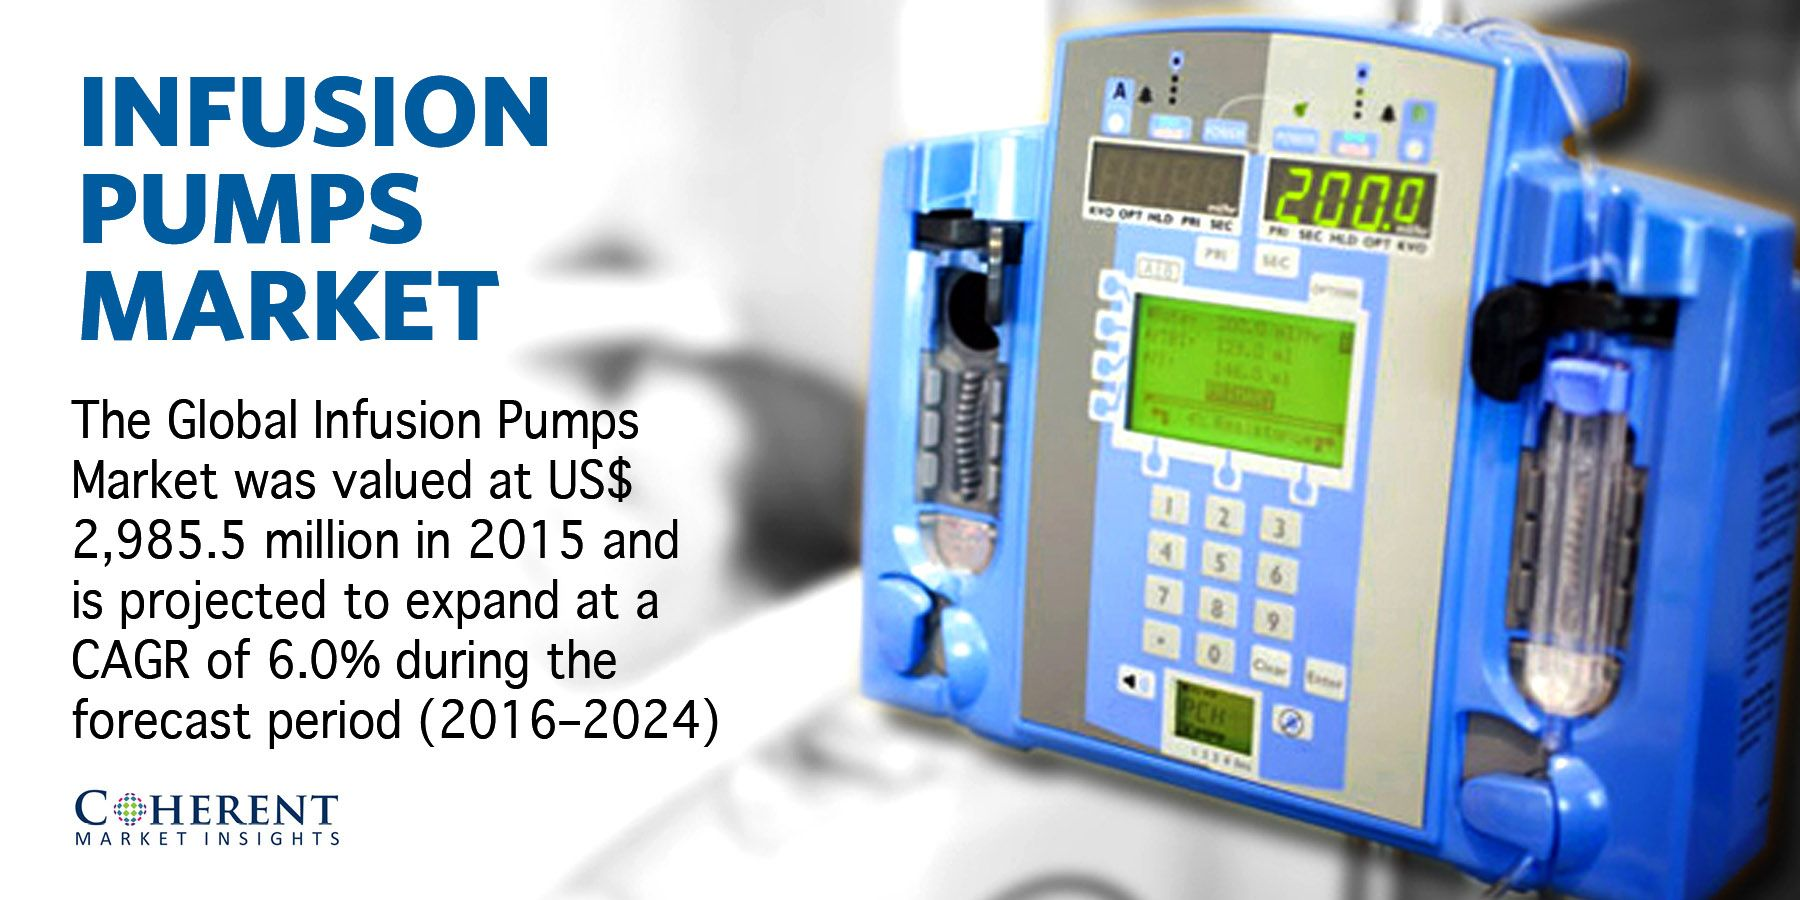 Increasing number of applications of infusion pumps in the